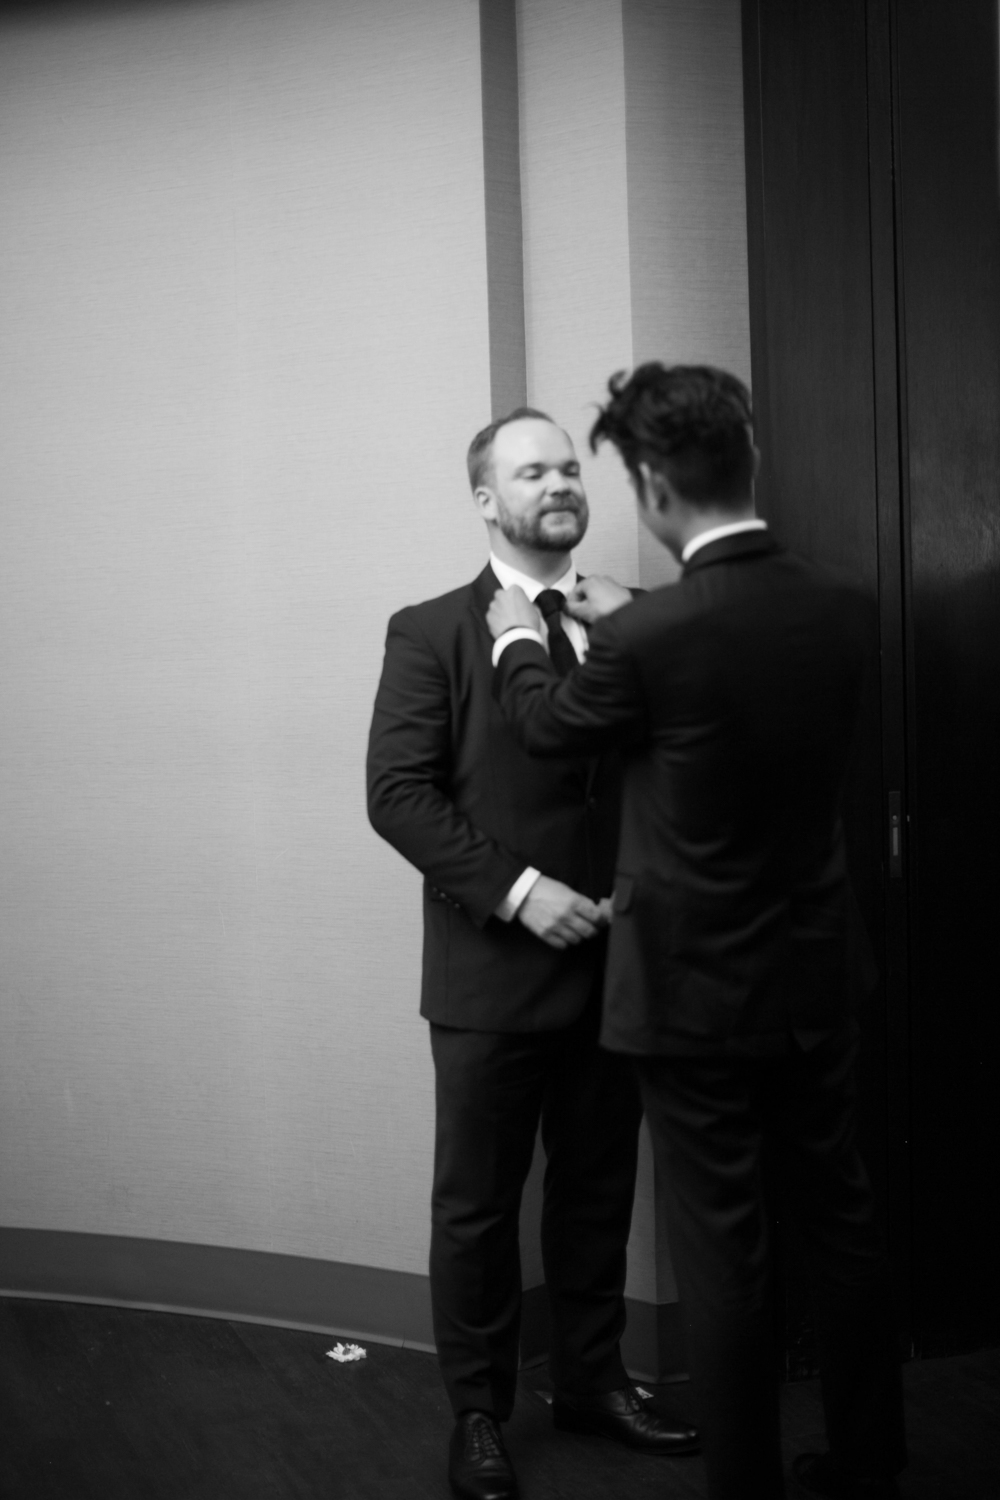 Groom gets ready for elopement ceremony